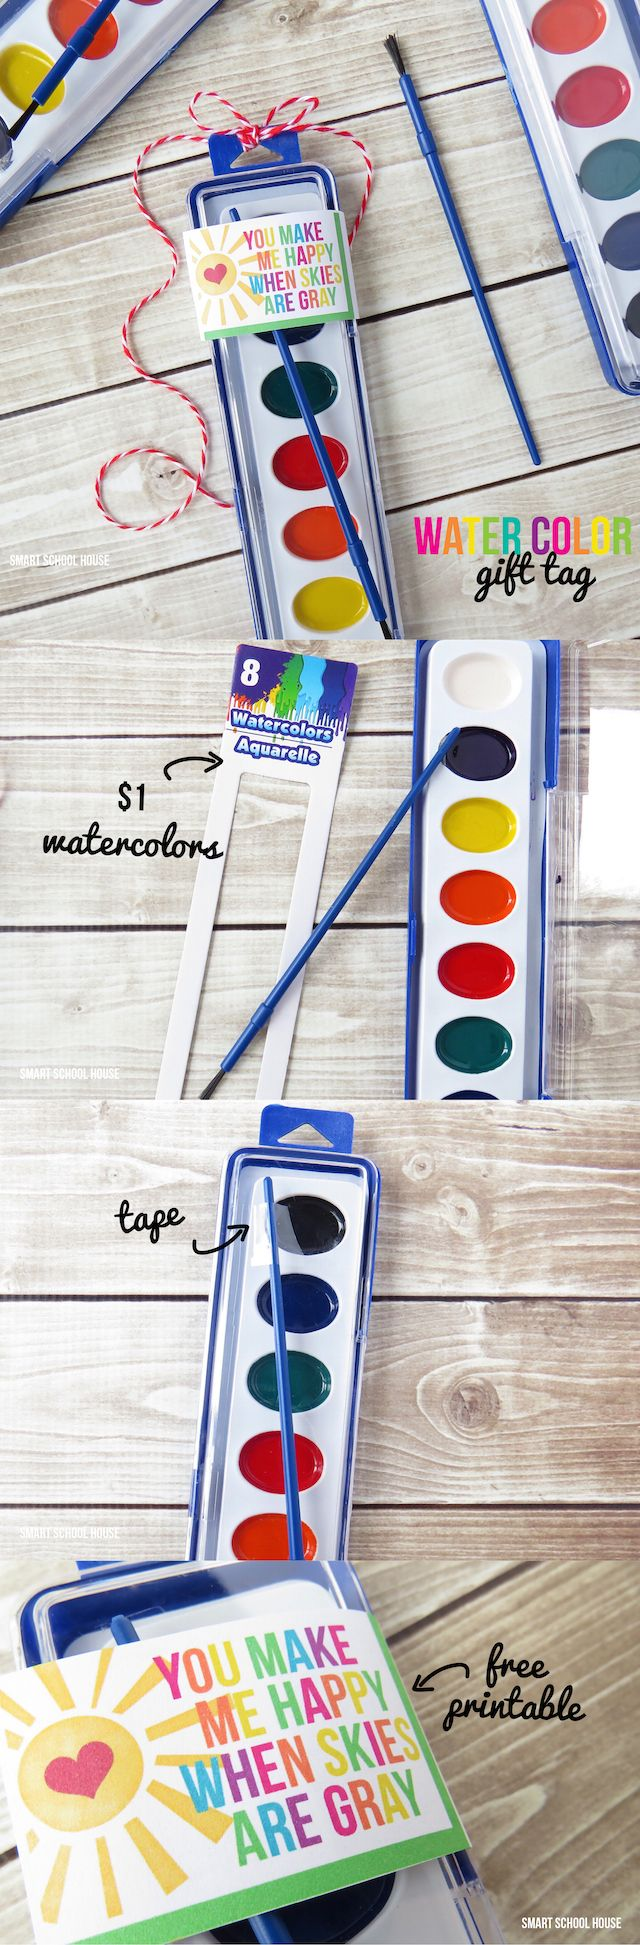 watercolor gift tags smart school house - 640×1945